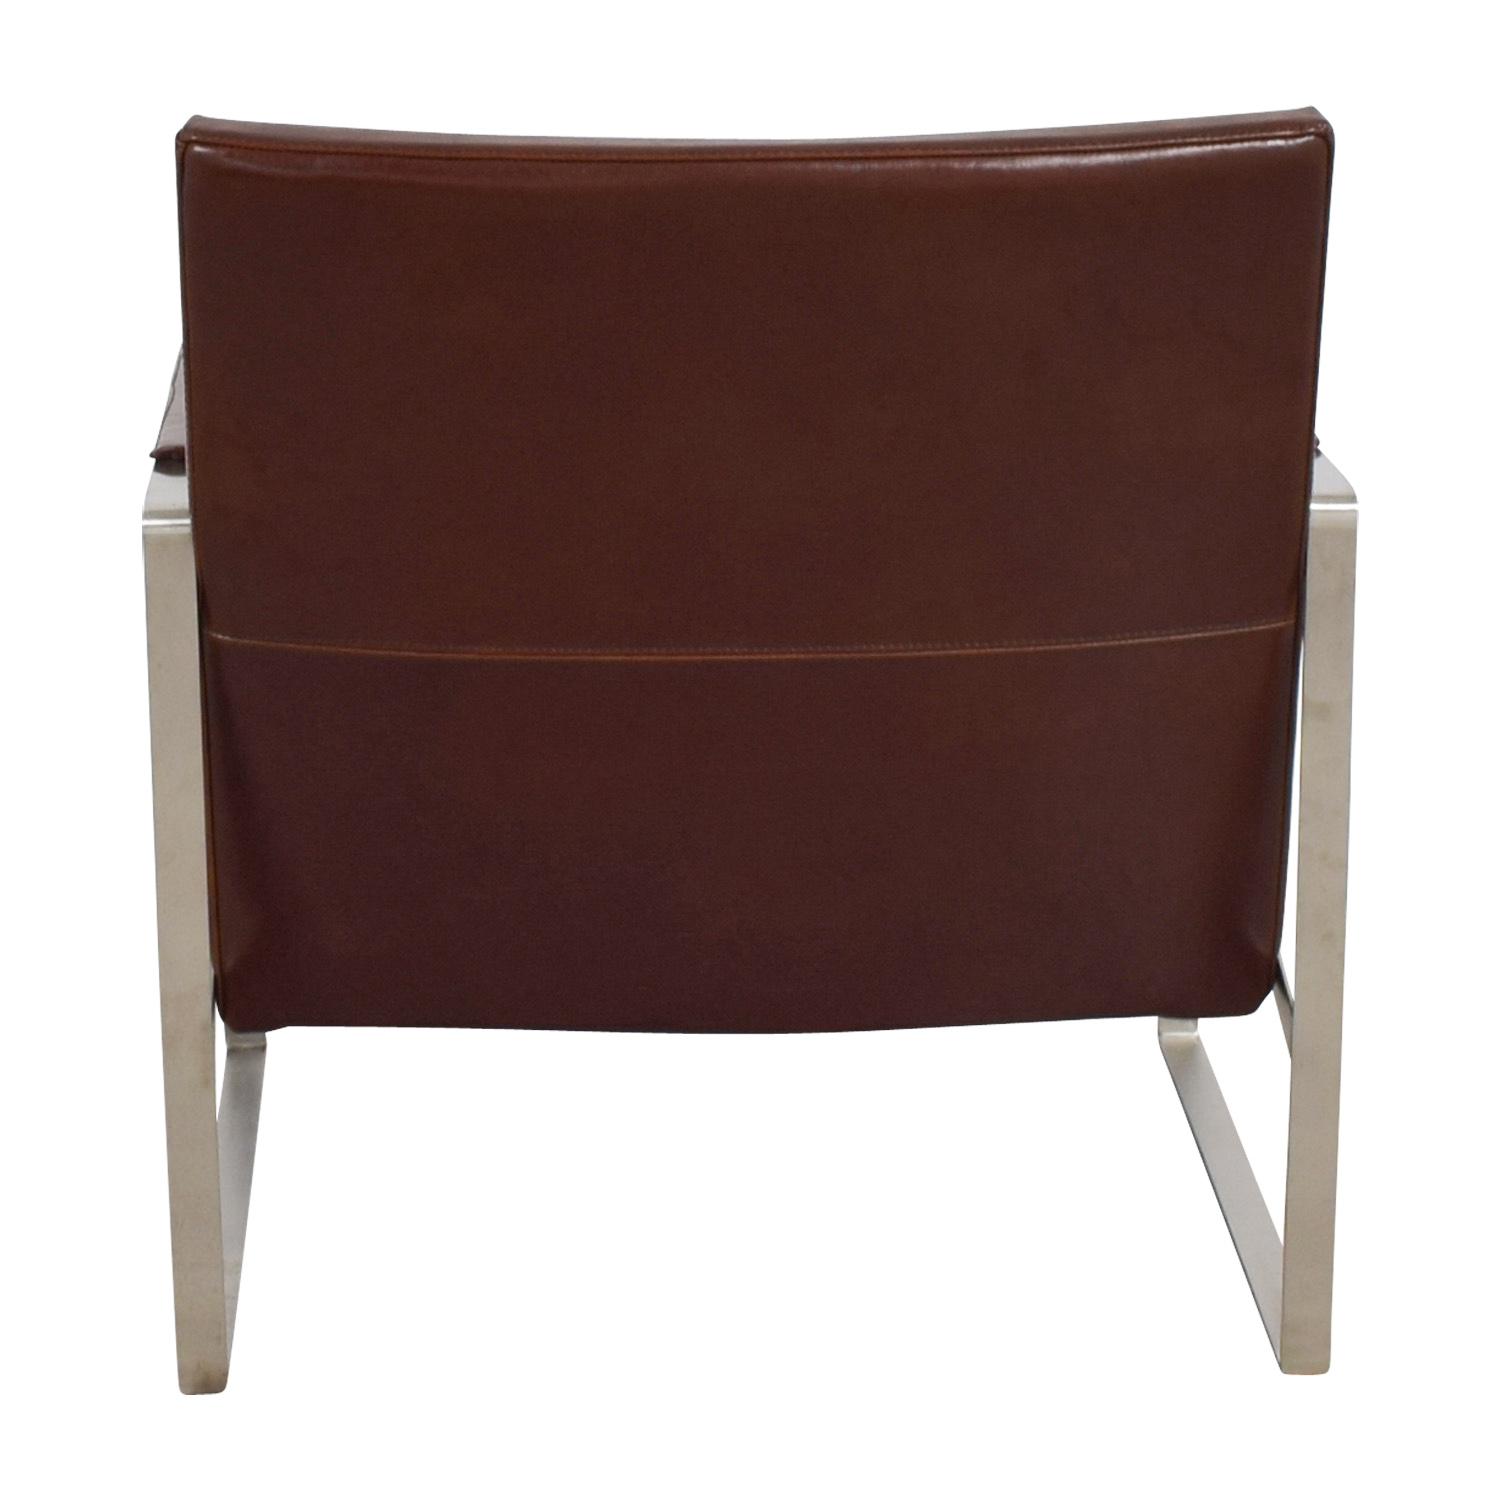 Soho Concept Soho Concept Zara Brown and Chrome Accent Chair used